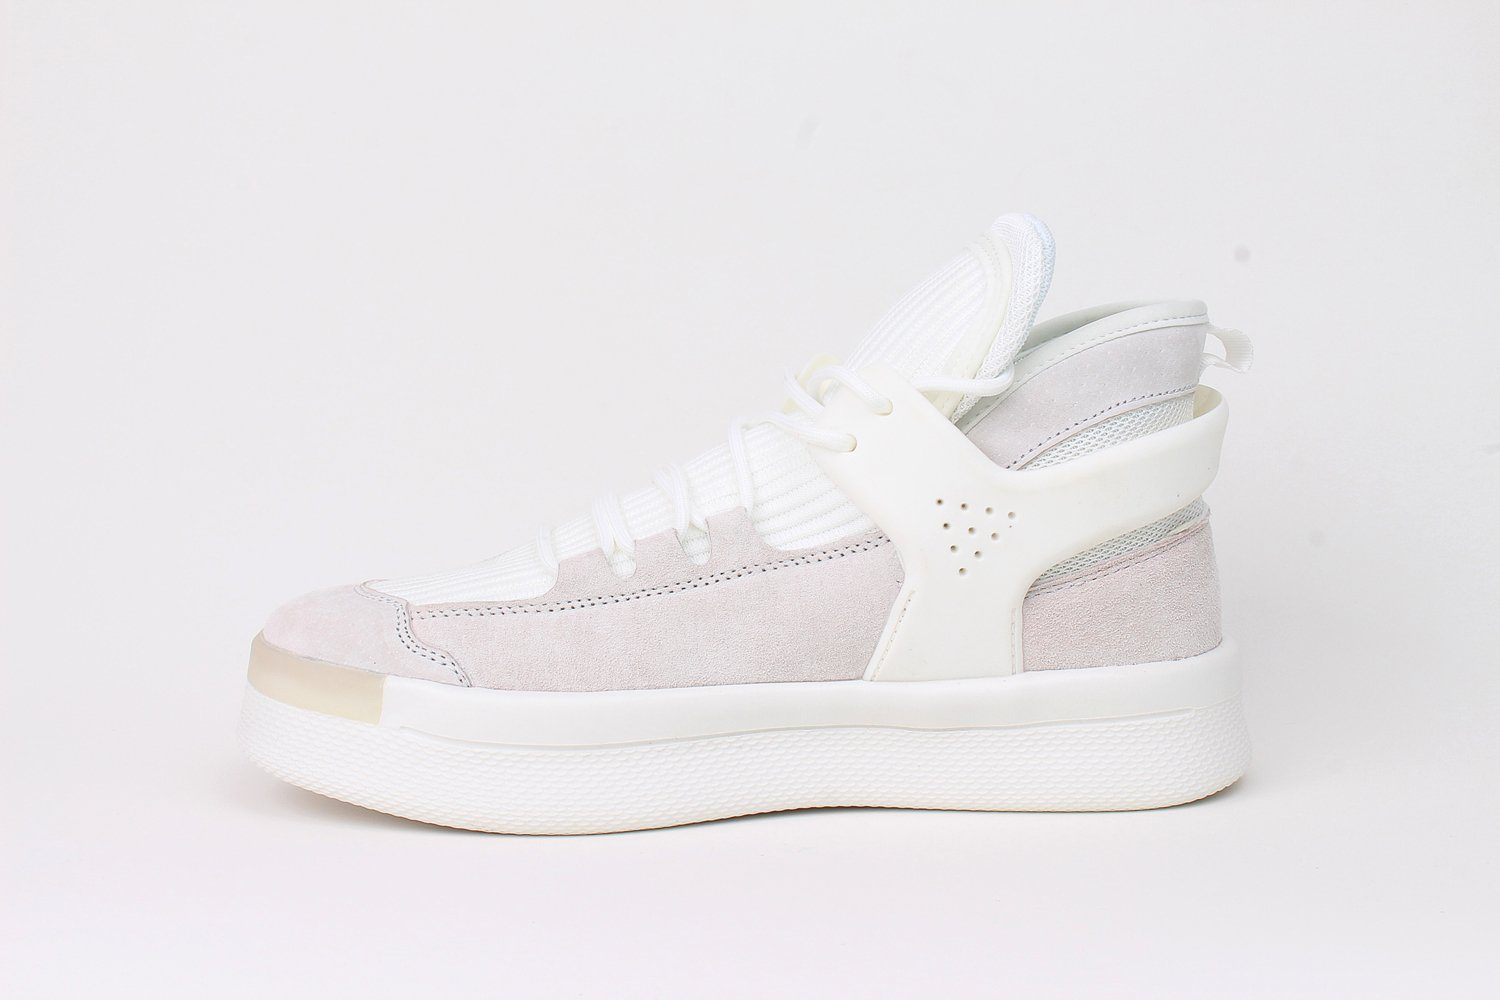 Middle Boots White Fabric Fashion Sneaker - Soulsfeng